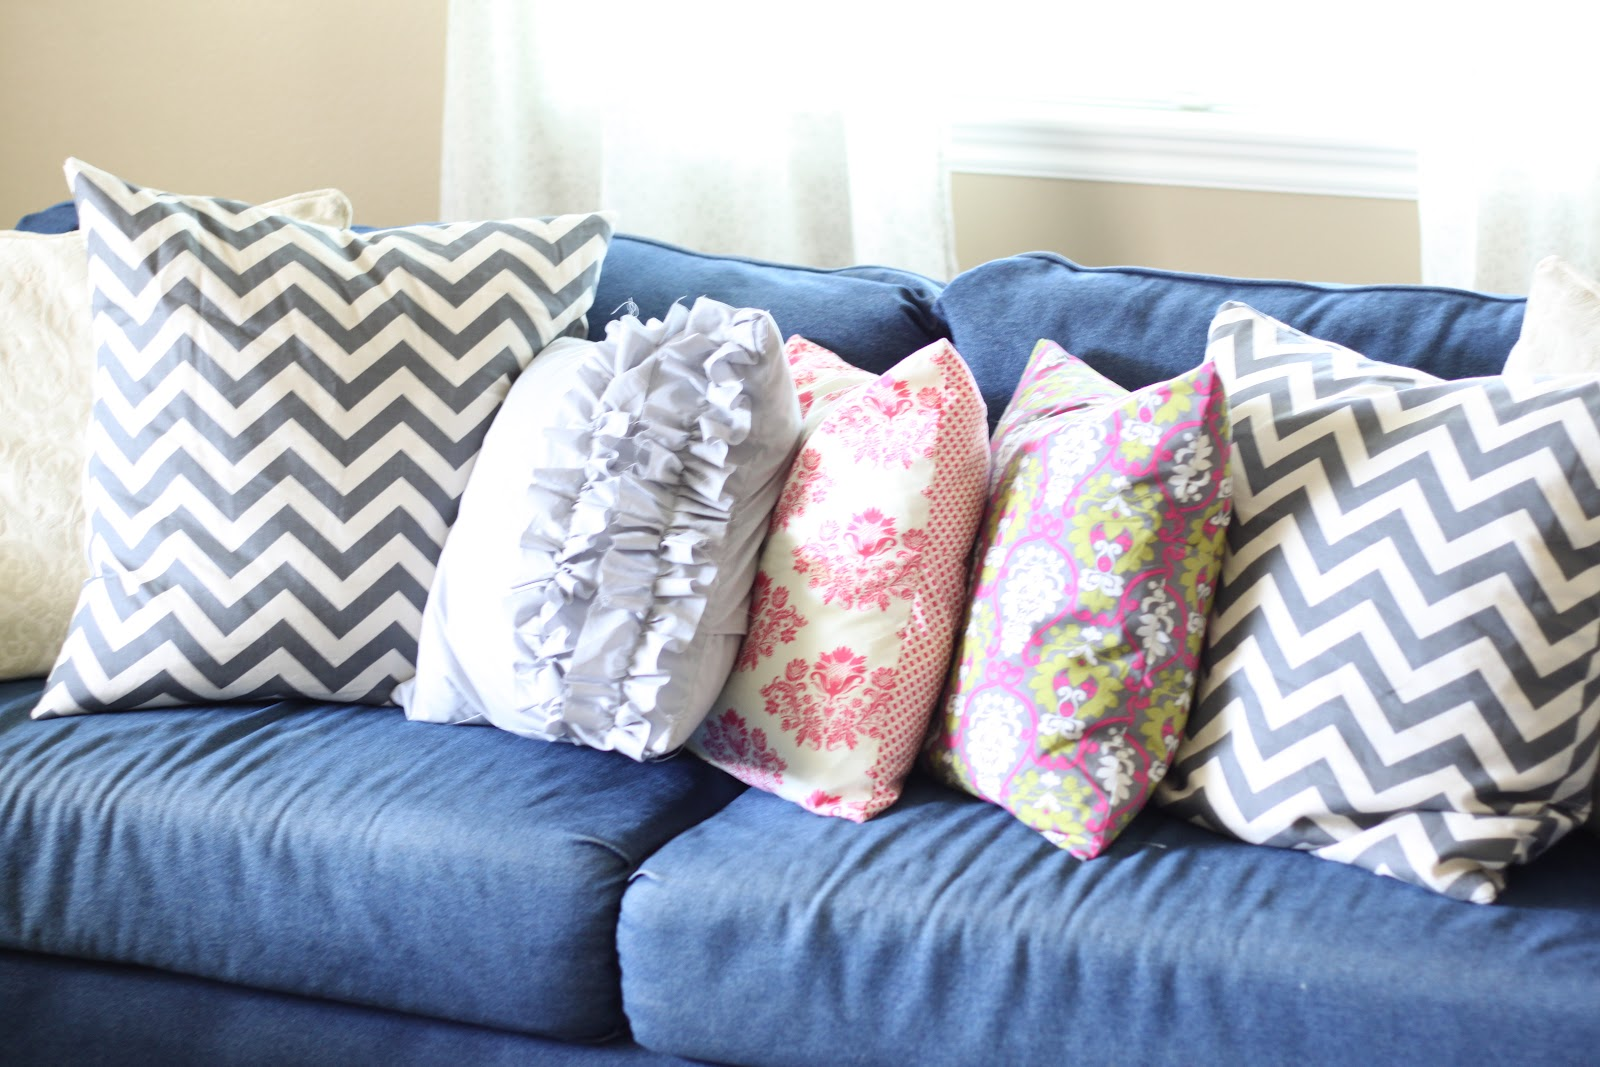 do it yourself divas diy throw pillows for my denim couch updated. Black Bedroom Furniture Sets. Home Design Ideas